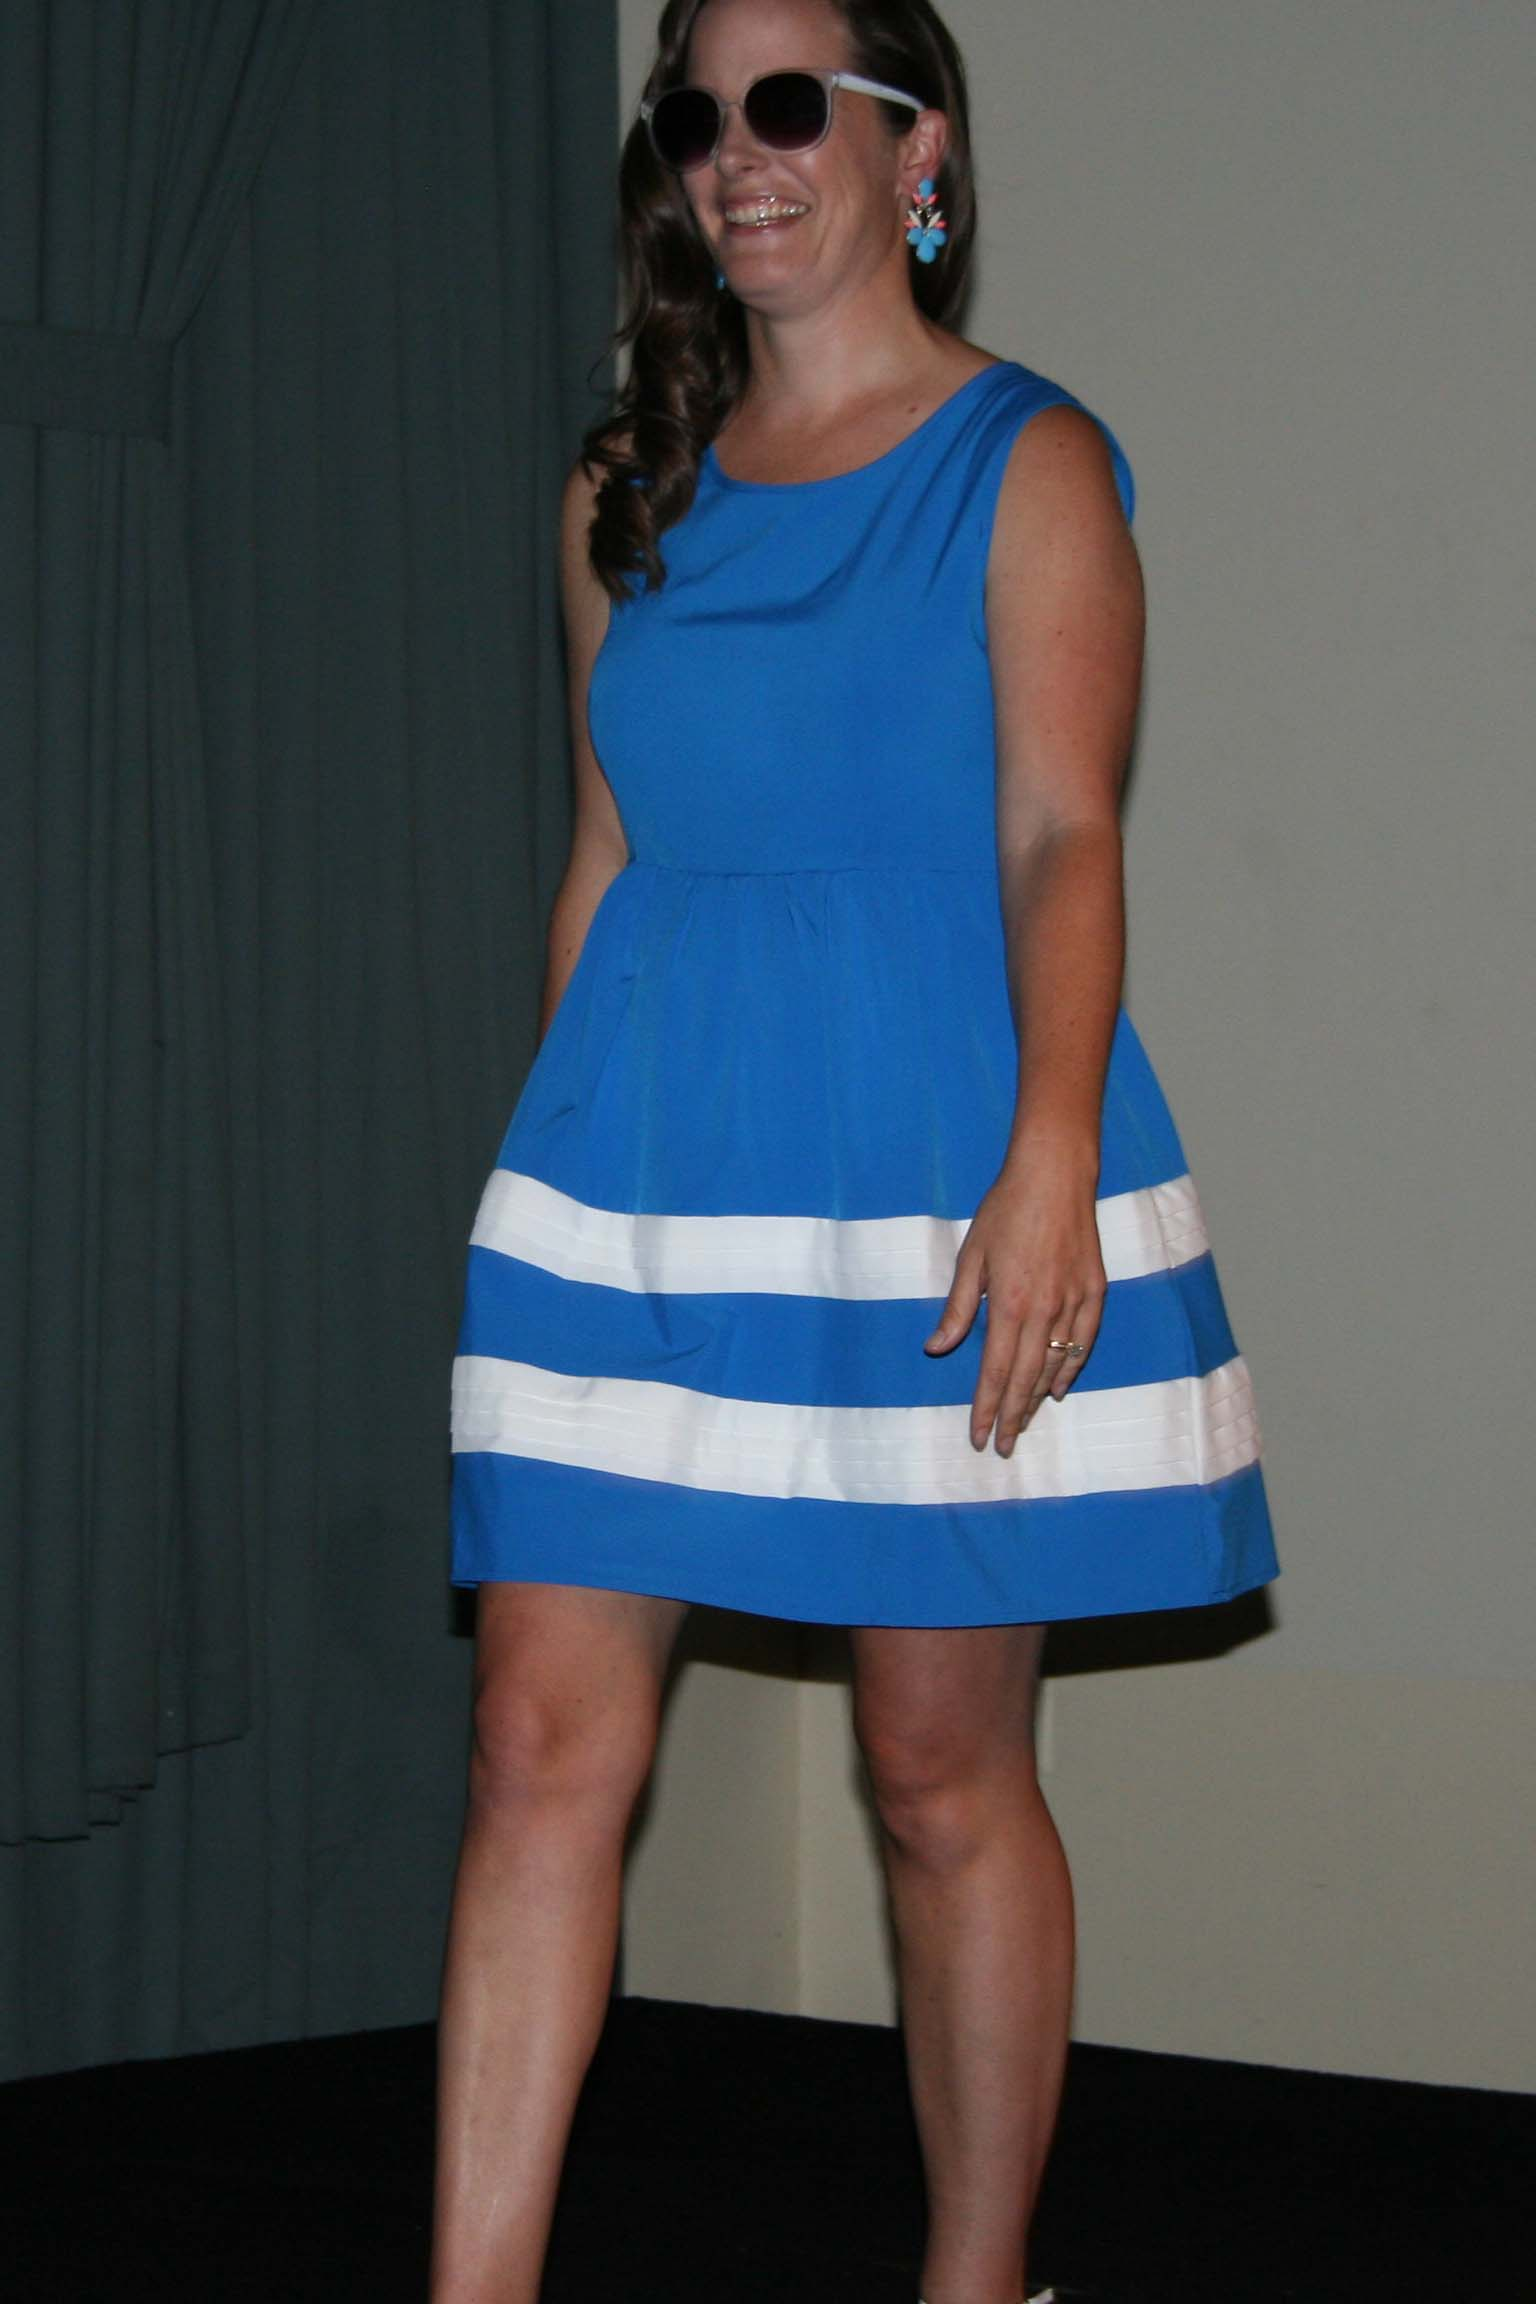 Brie Allis models a blue and white A-line dress by Ya. (Photo: Mark Heckathorn/DC on Heels)